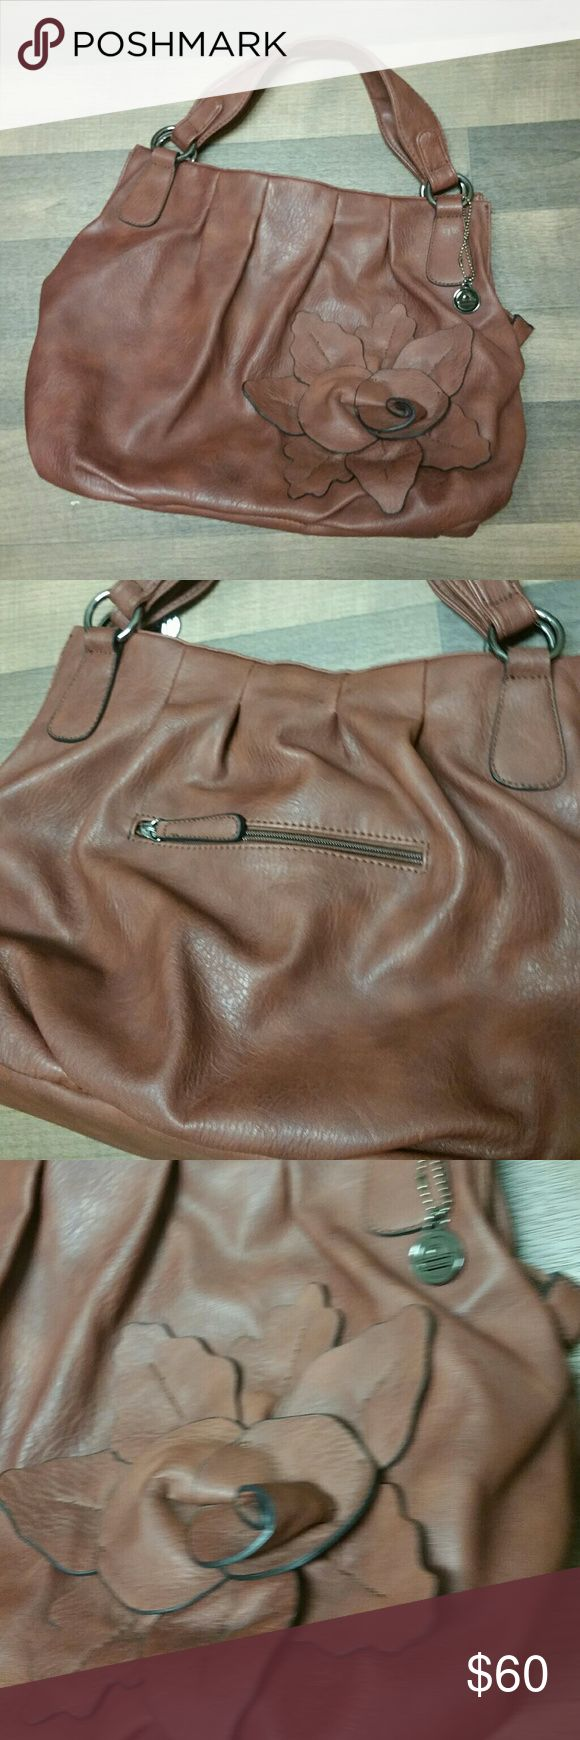 NWOT Big Buddha Leather Petal Bag In excellent NWOT condition...The brown color is more a burnt sienna from our Crayola box. Final sale price firm unless bundled!!!!!!!!!!!!!!!! Big Buddha Bags Shoulder Bags